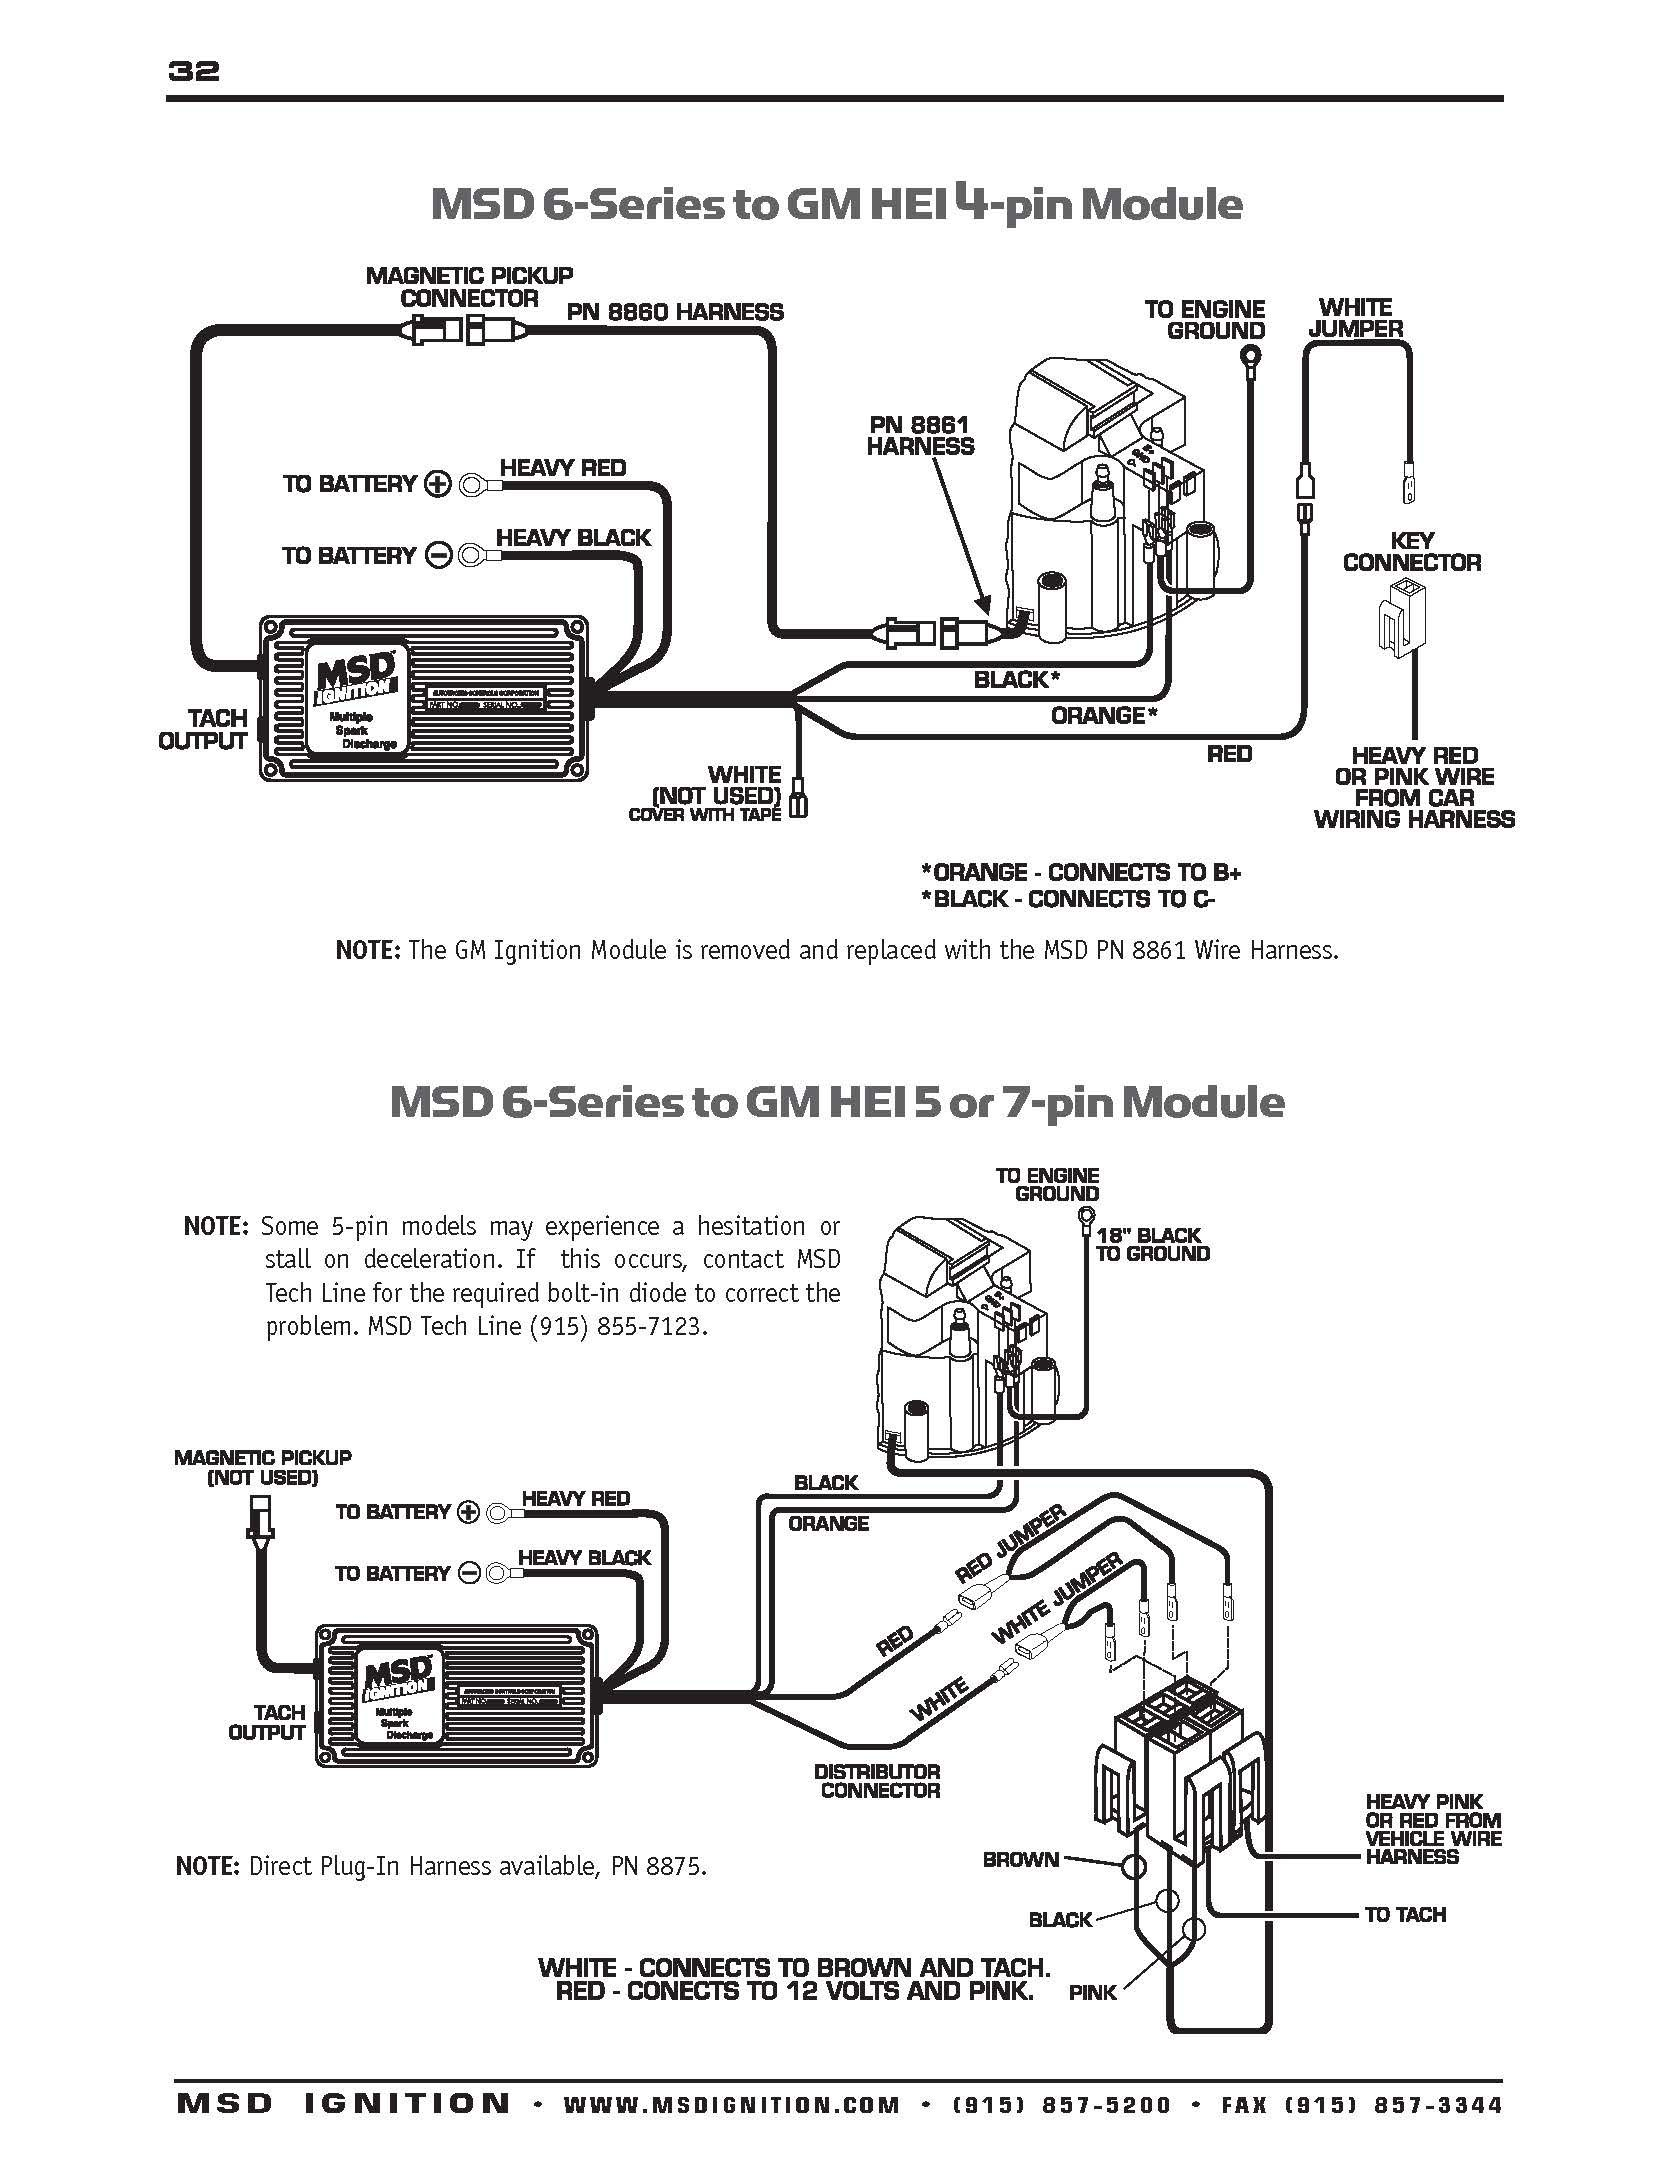 MSD Ignition Wiring Diagrams | 1966 Chevelle | Pinterest | Cars, Car ...